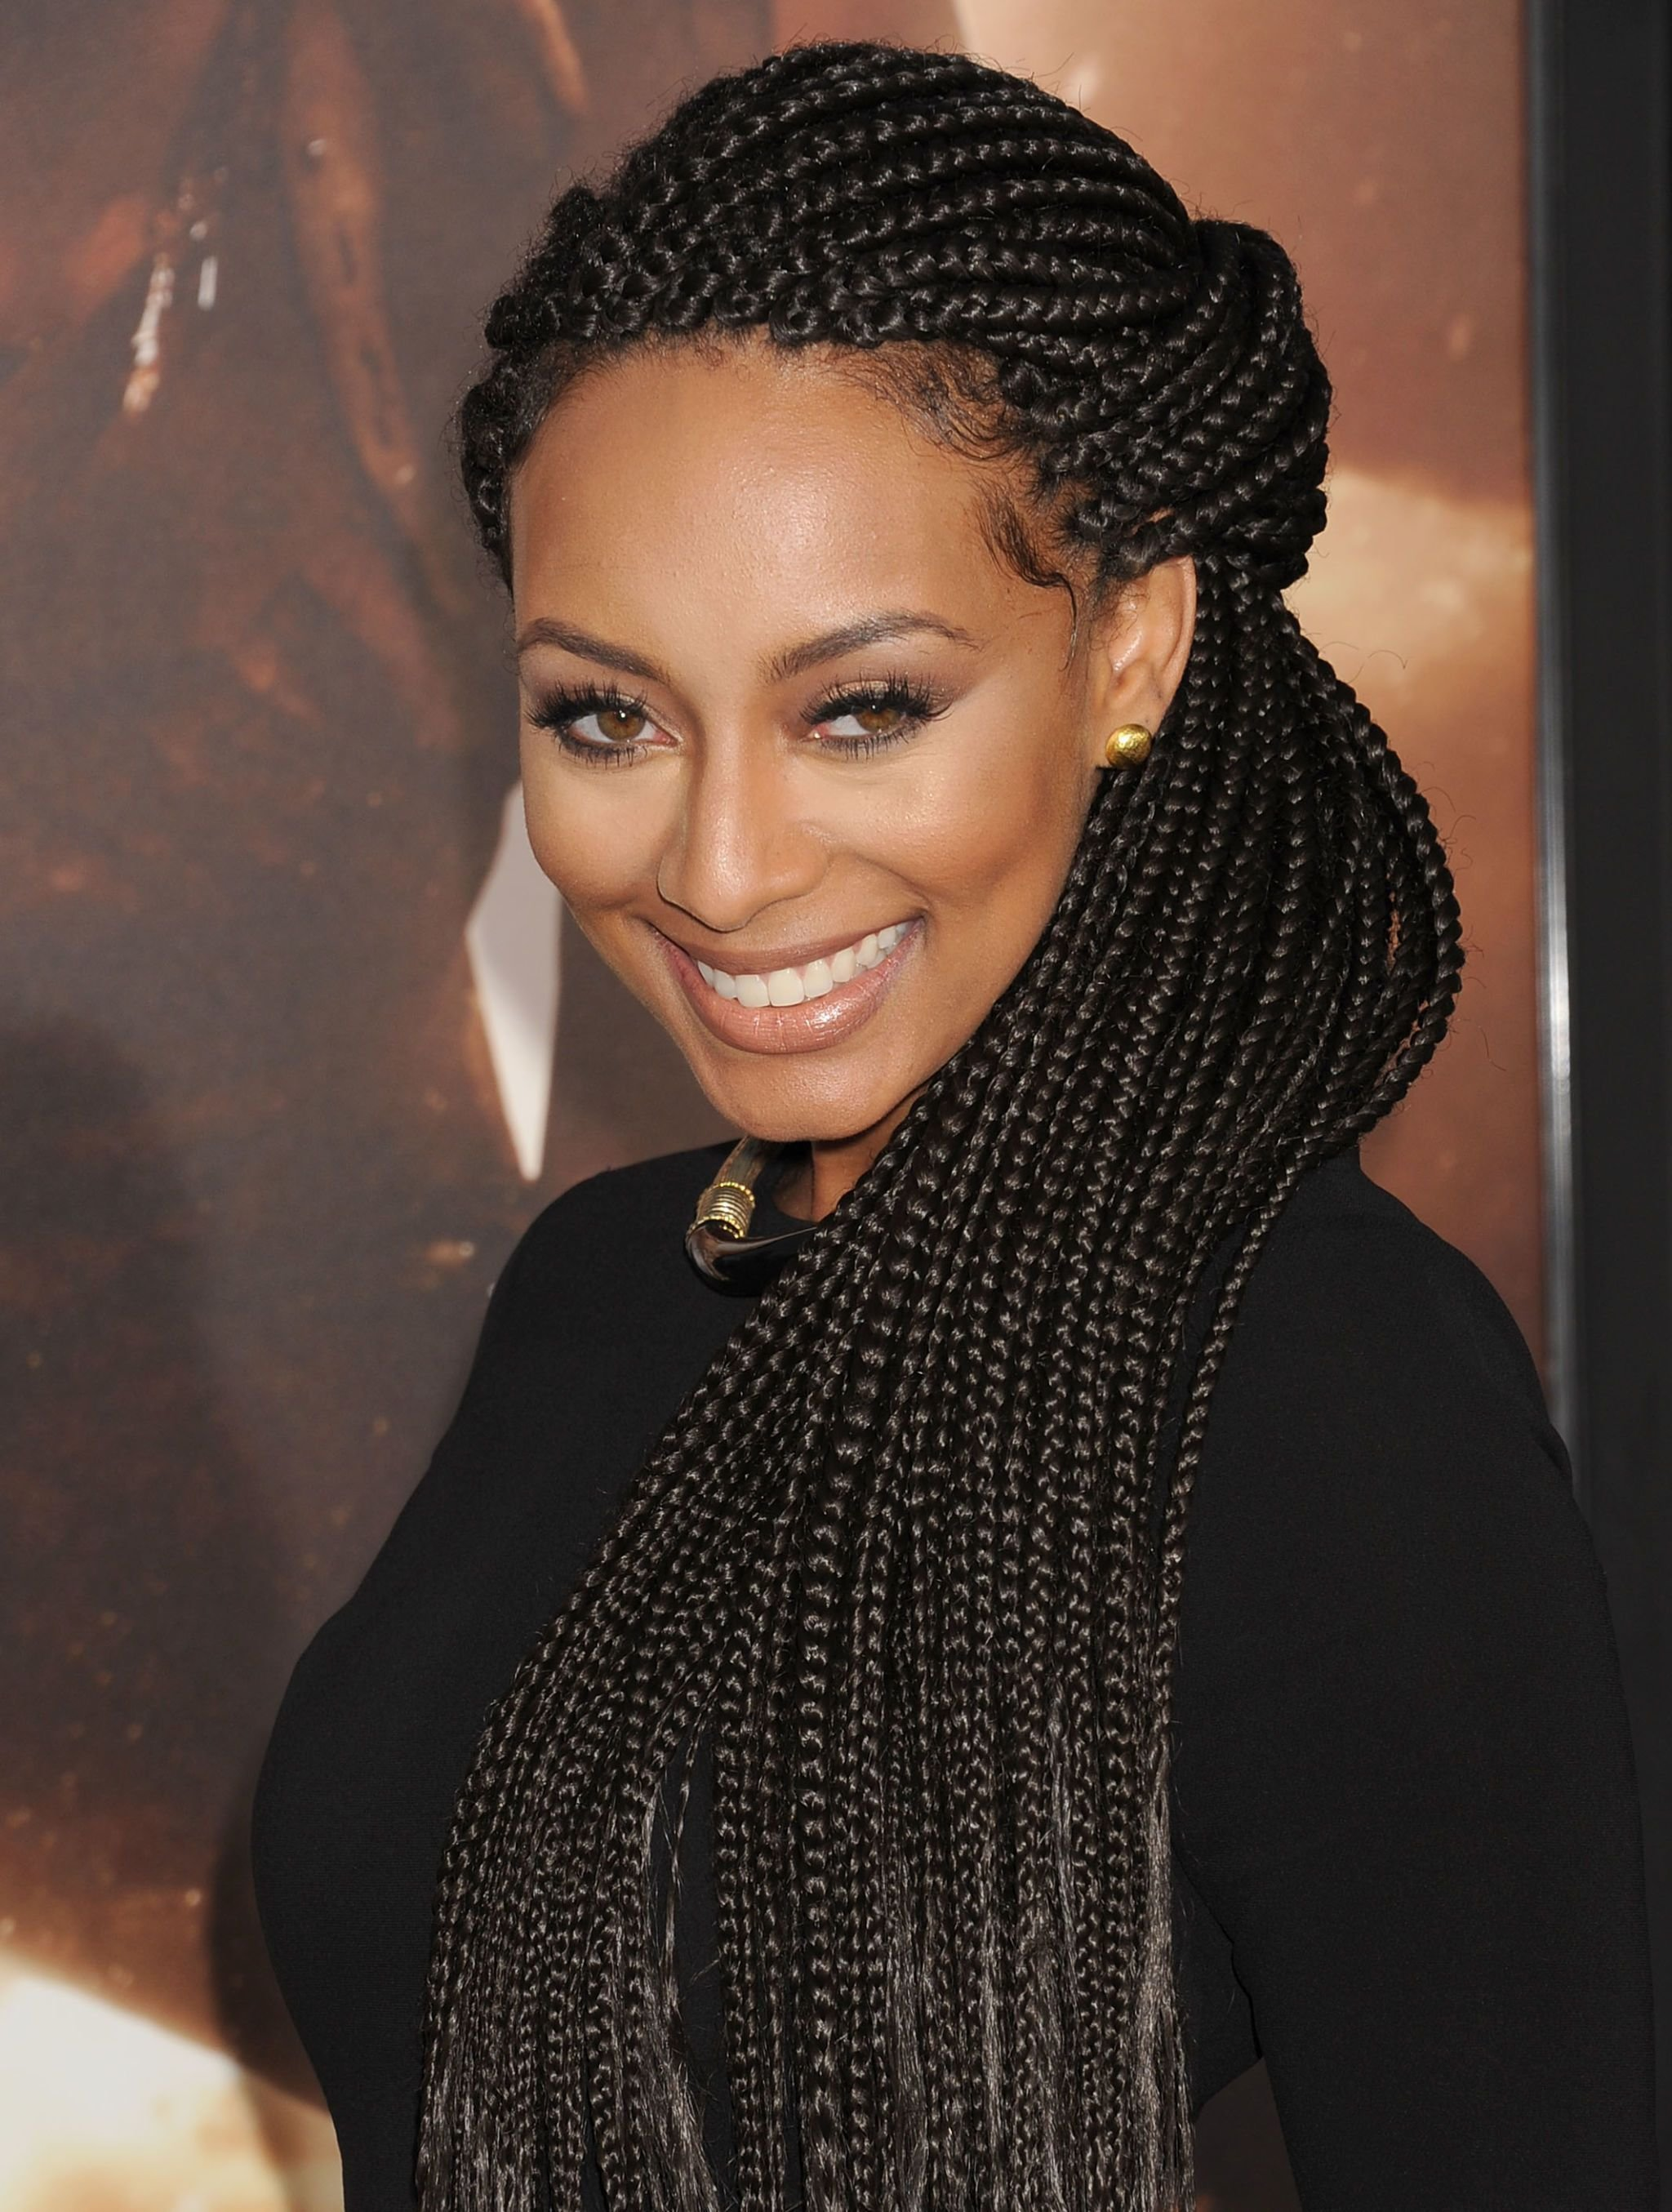 The Best 30 Popular Hairstyles For Black Women Hairstyles Pictures